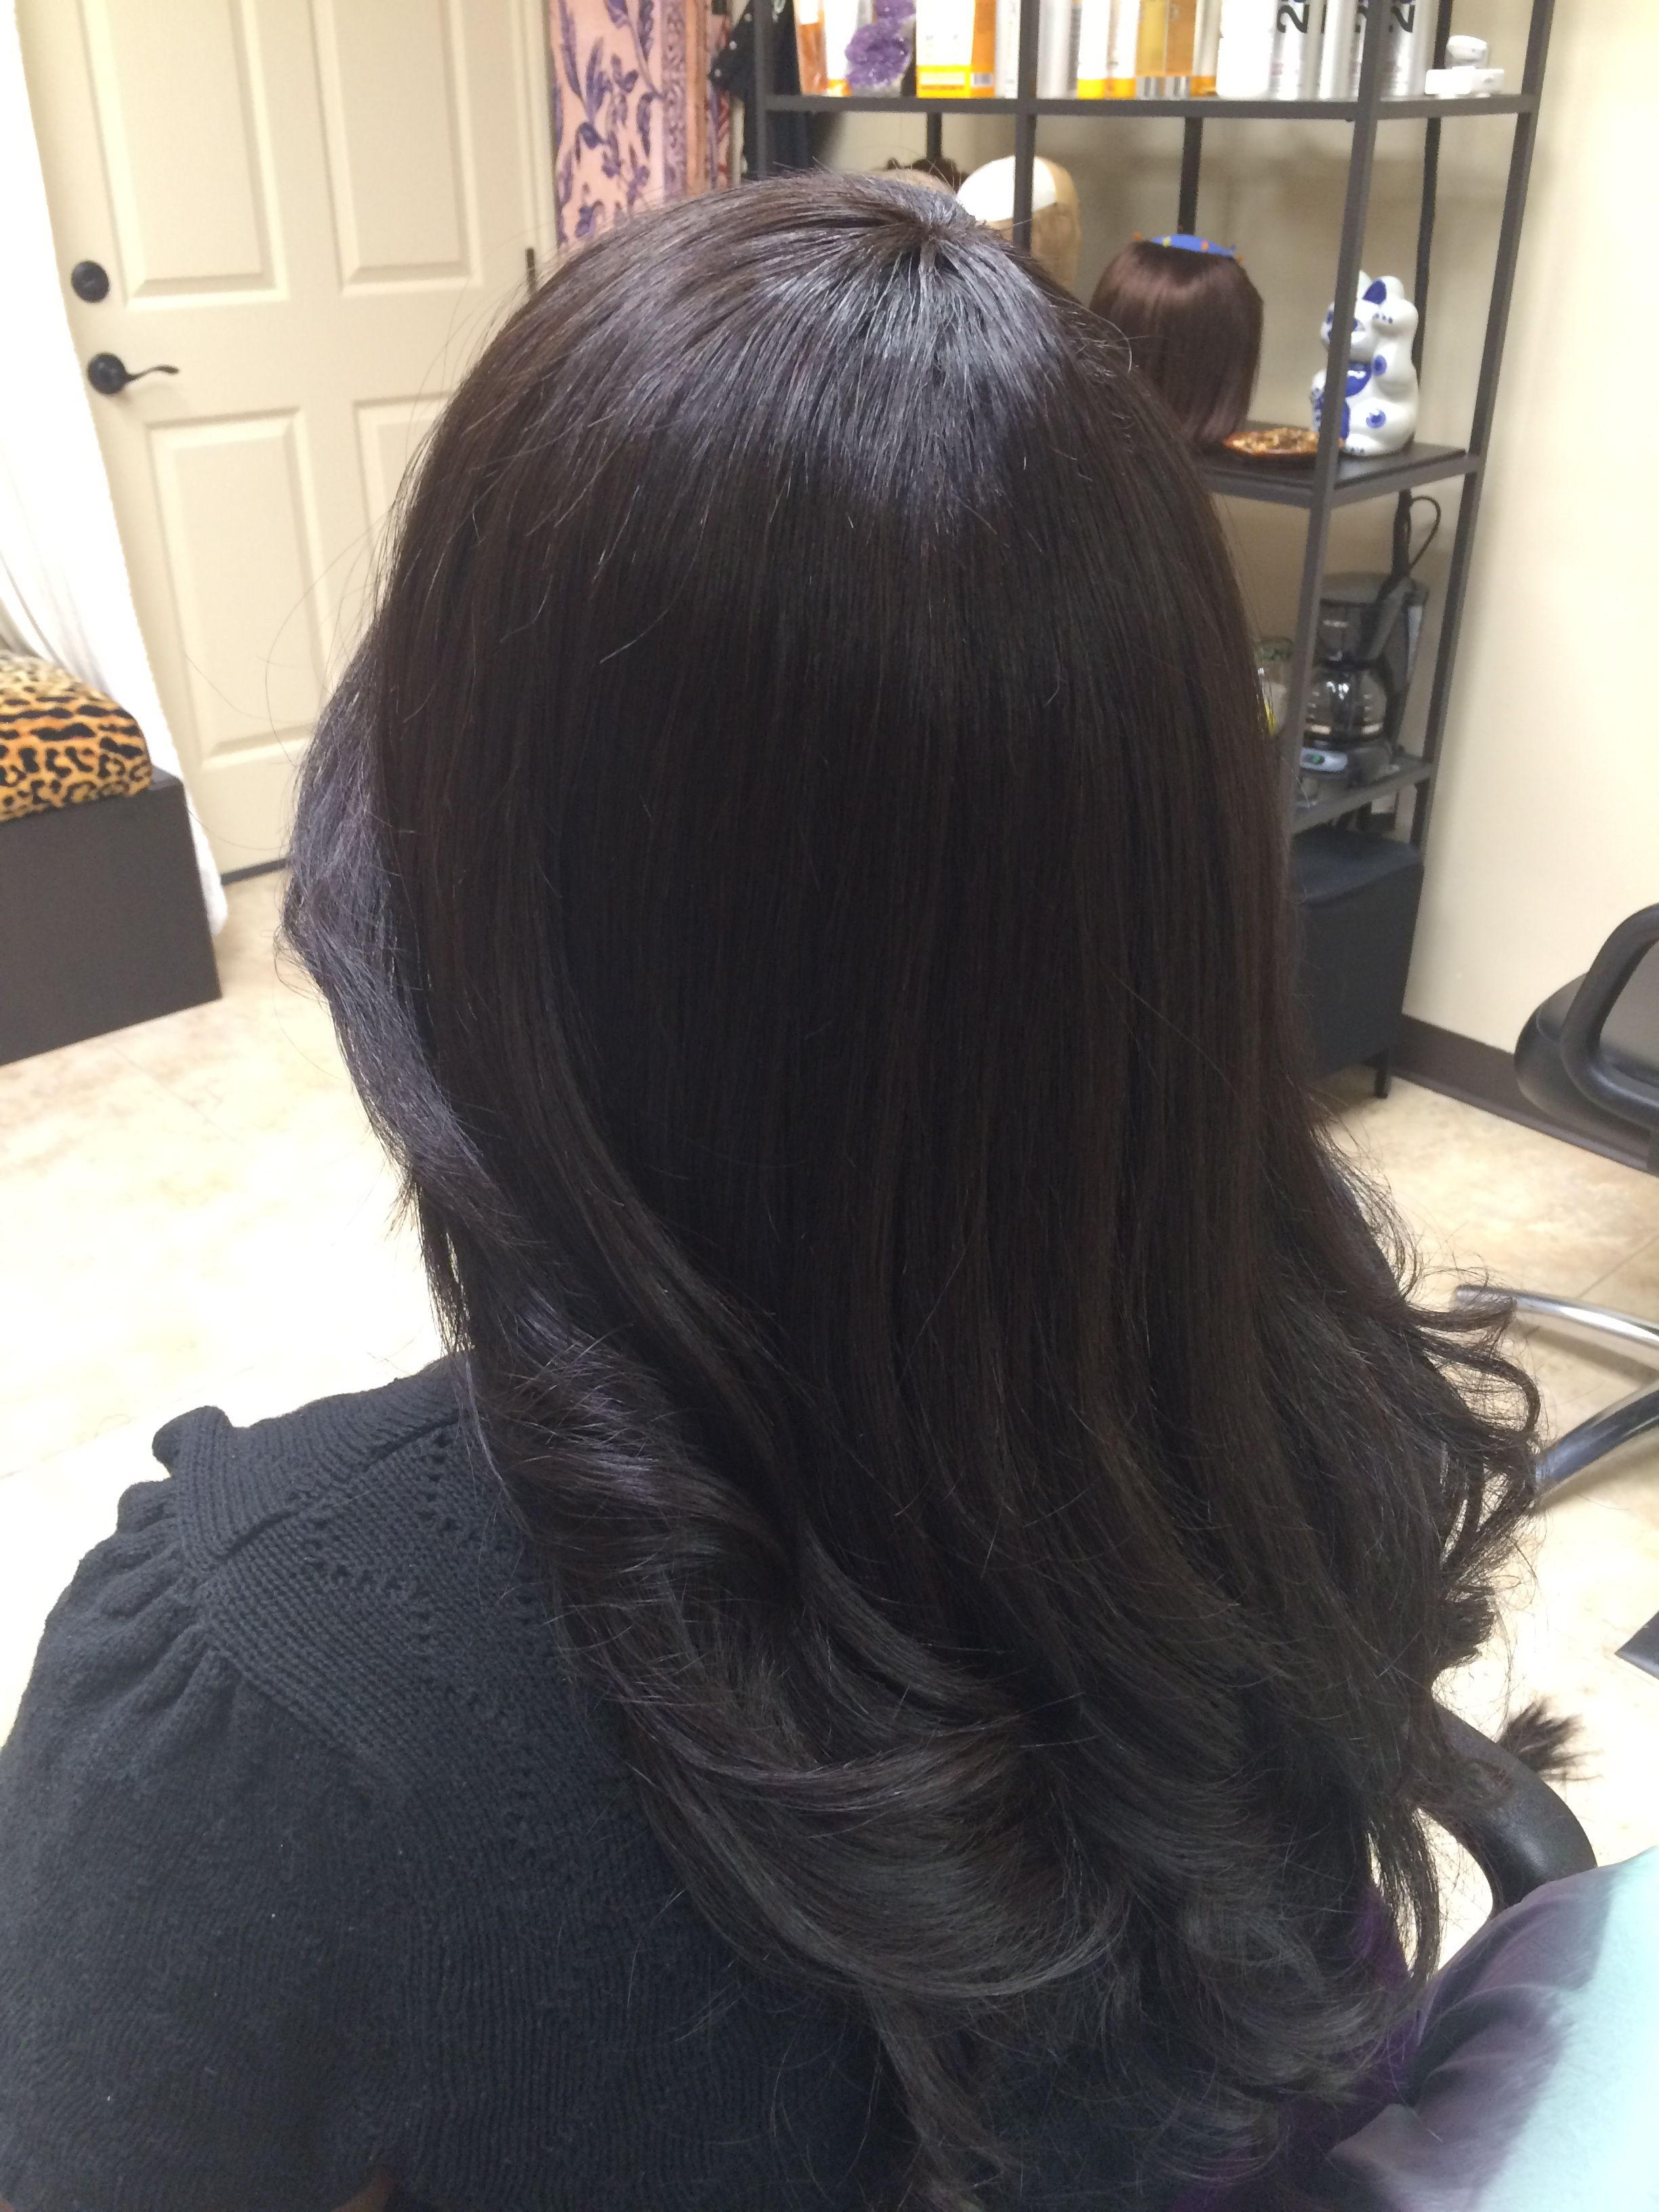 Custom unit jahair hair weaves and hair replacement